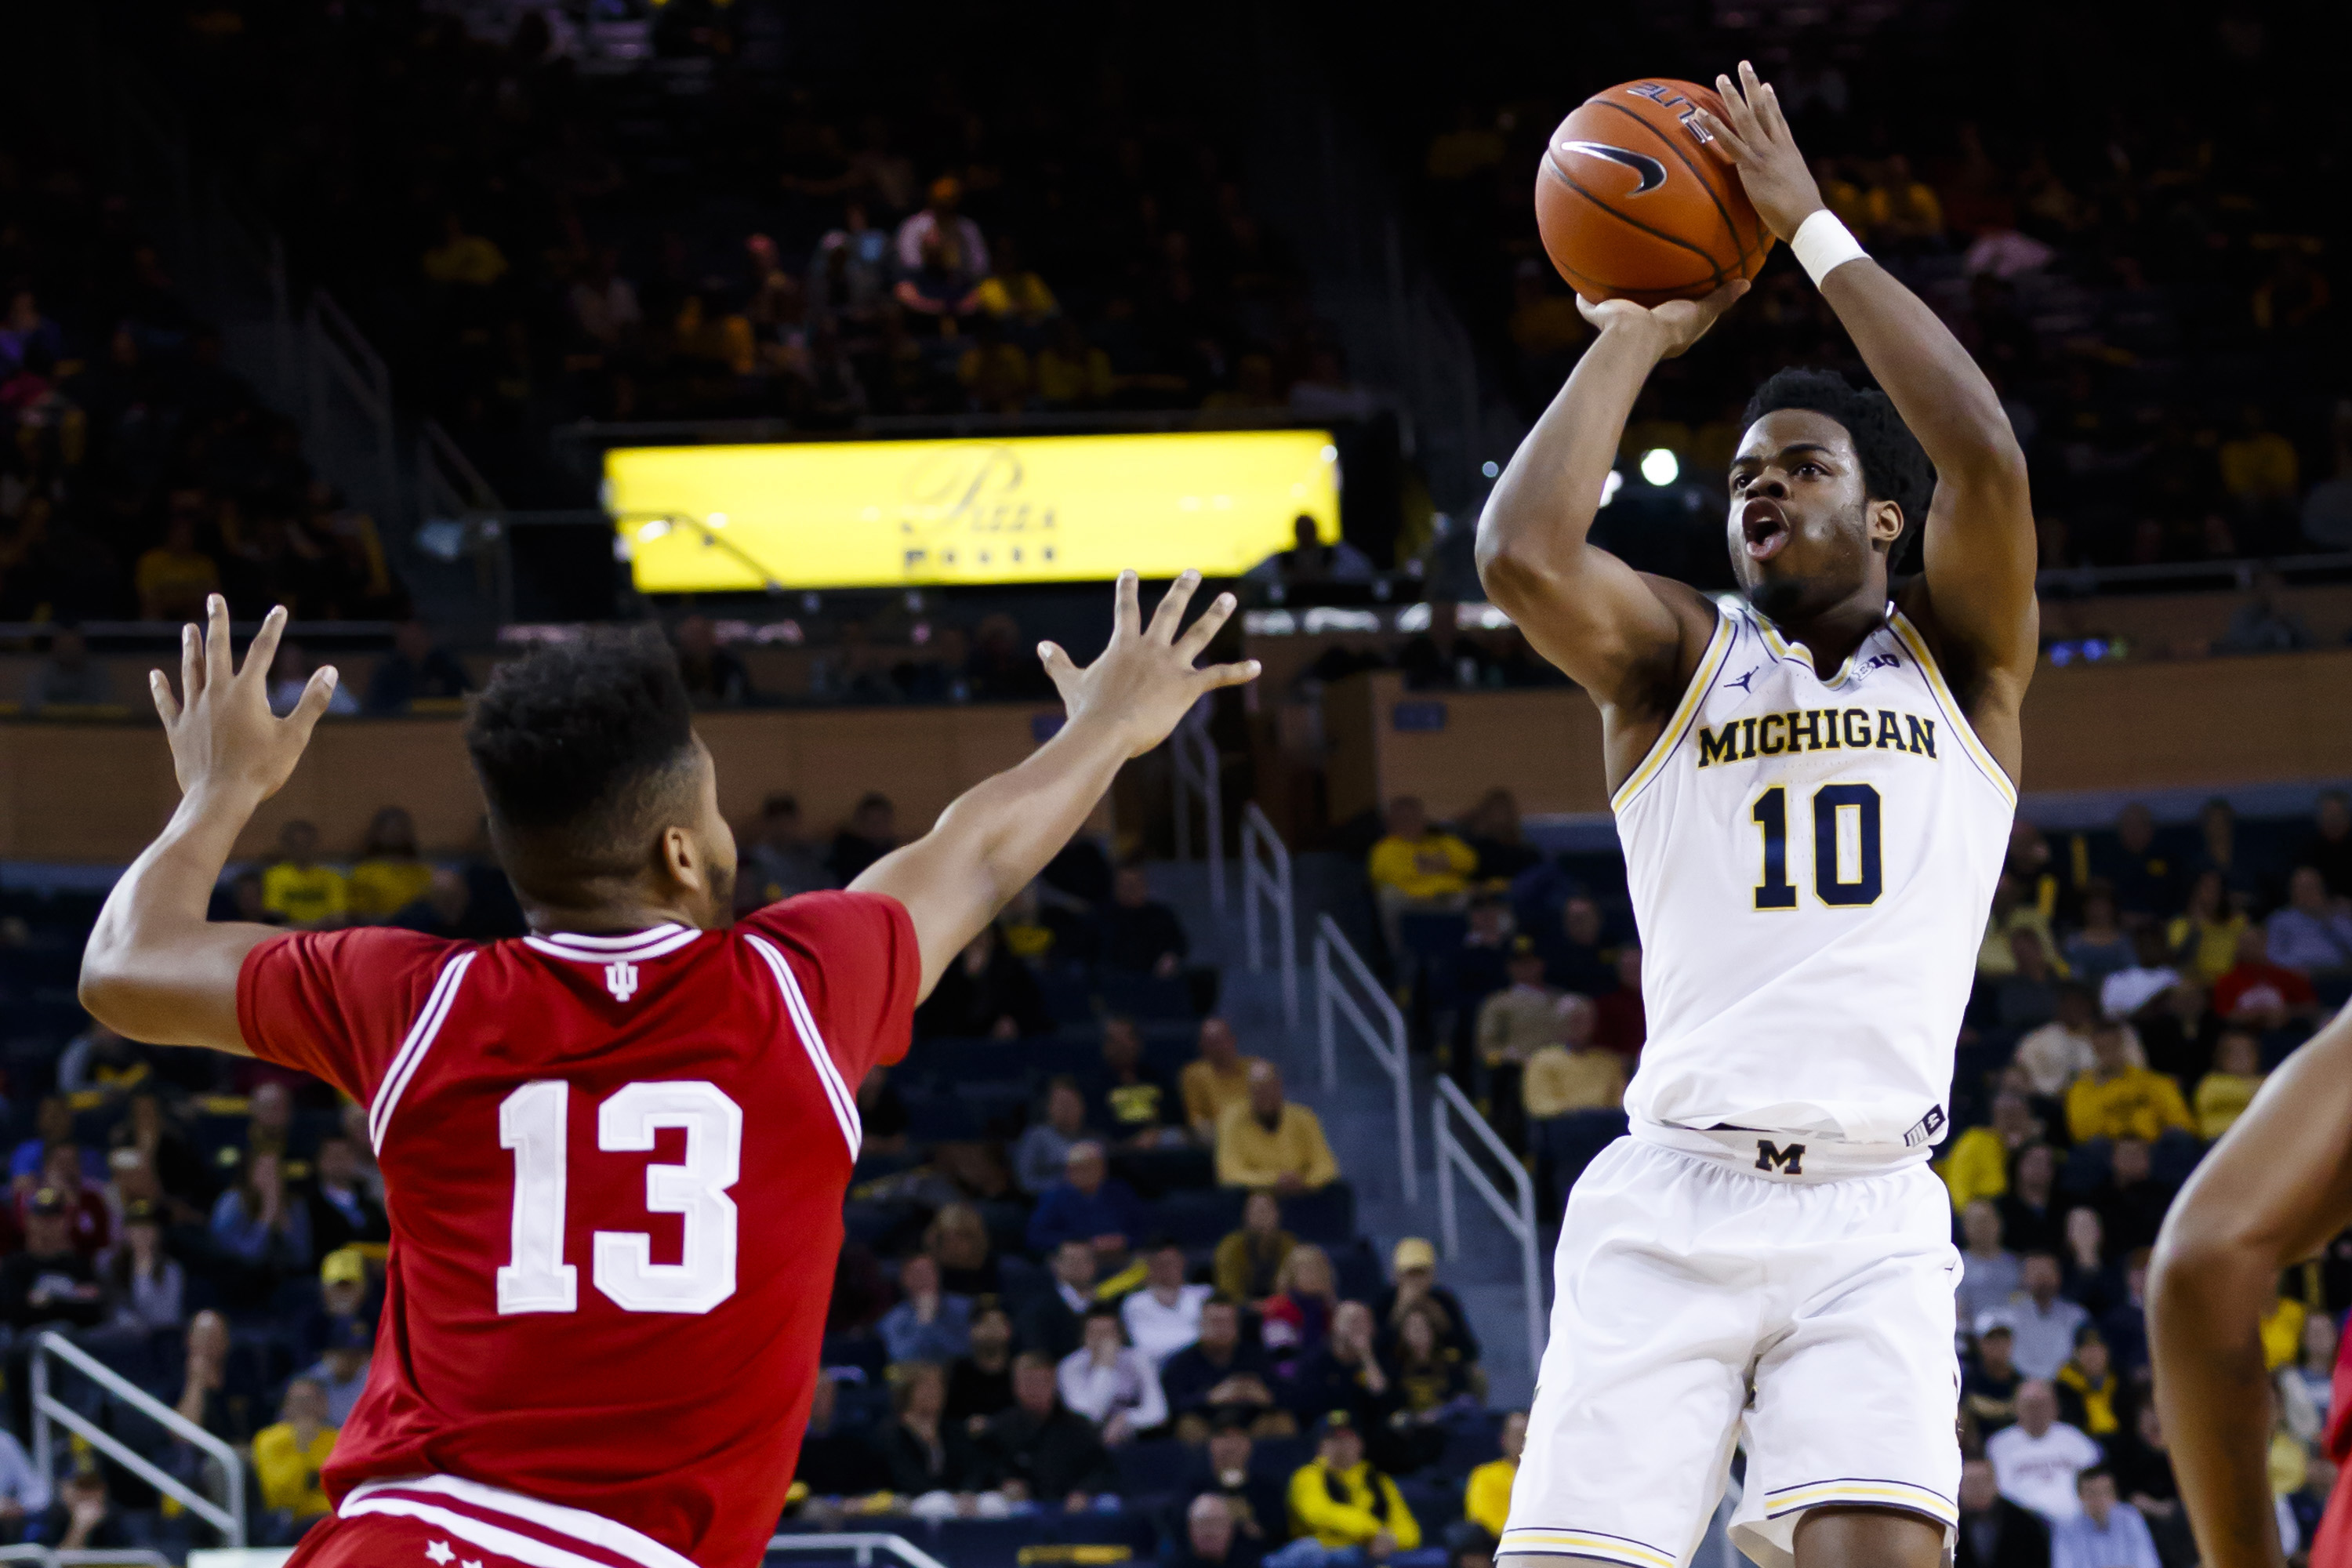 Michigan Basketball How the Wolverines Are Putting It AllMichigan Basketball